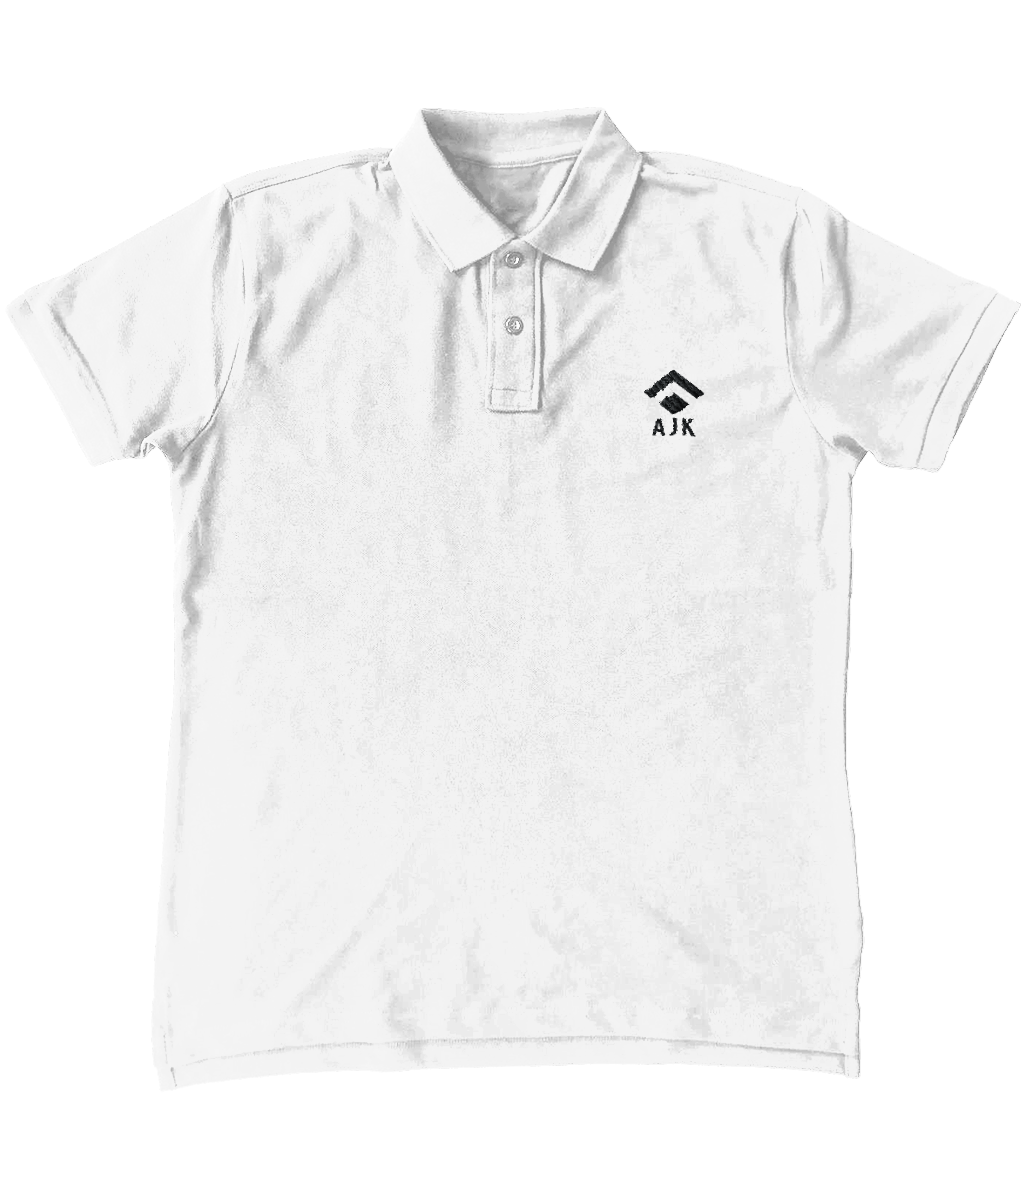 AJK Polo Shirt White